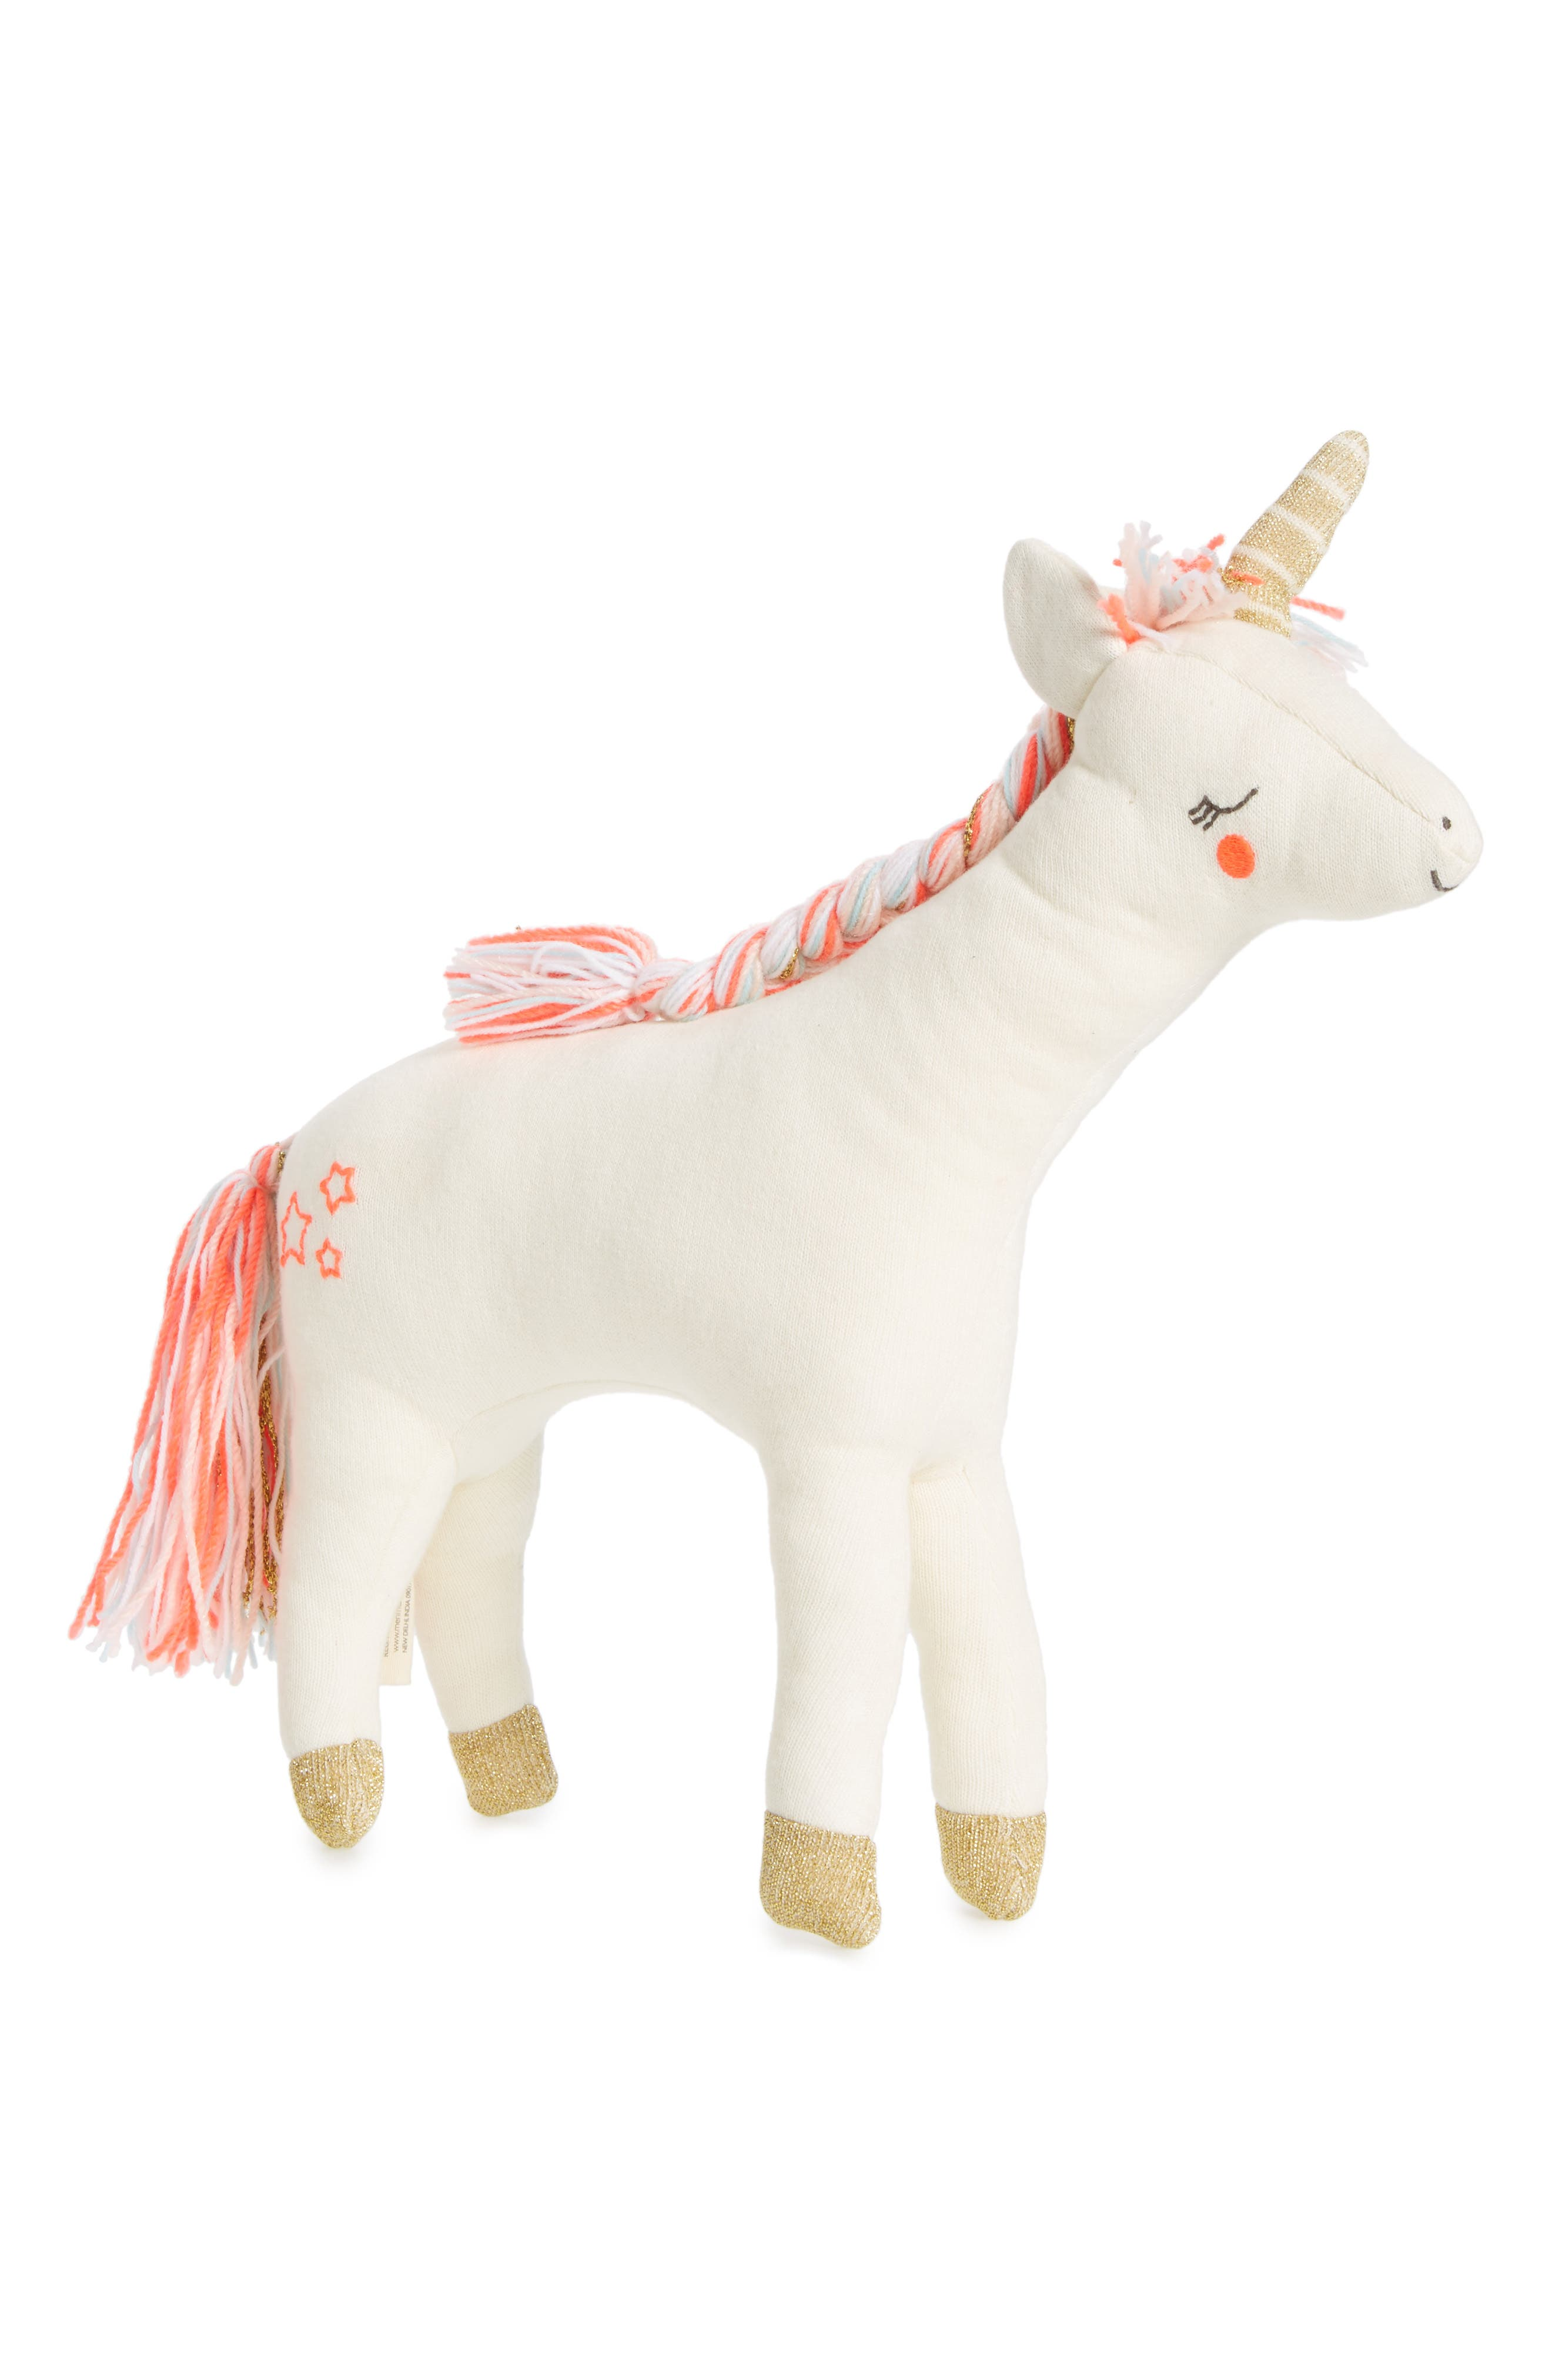 Knit Organic Cotton Unicorn Cushion/Toy,                         Main,                         color, 650